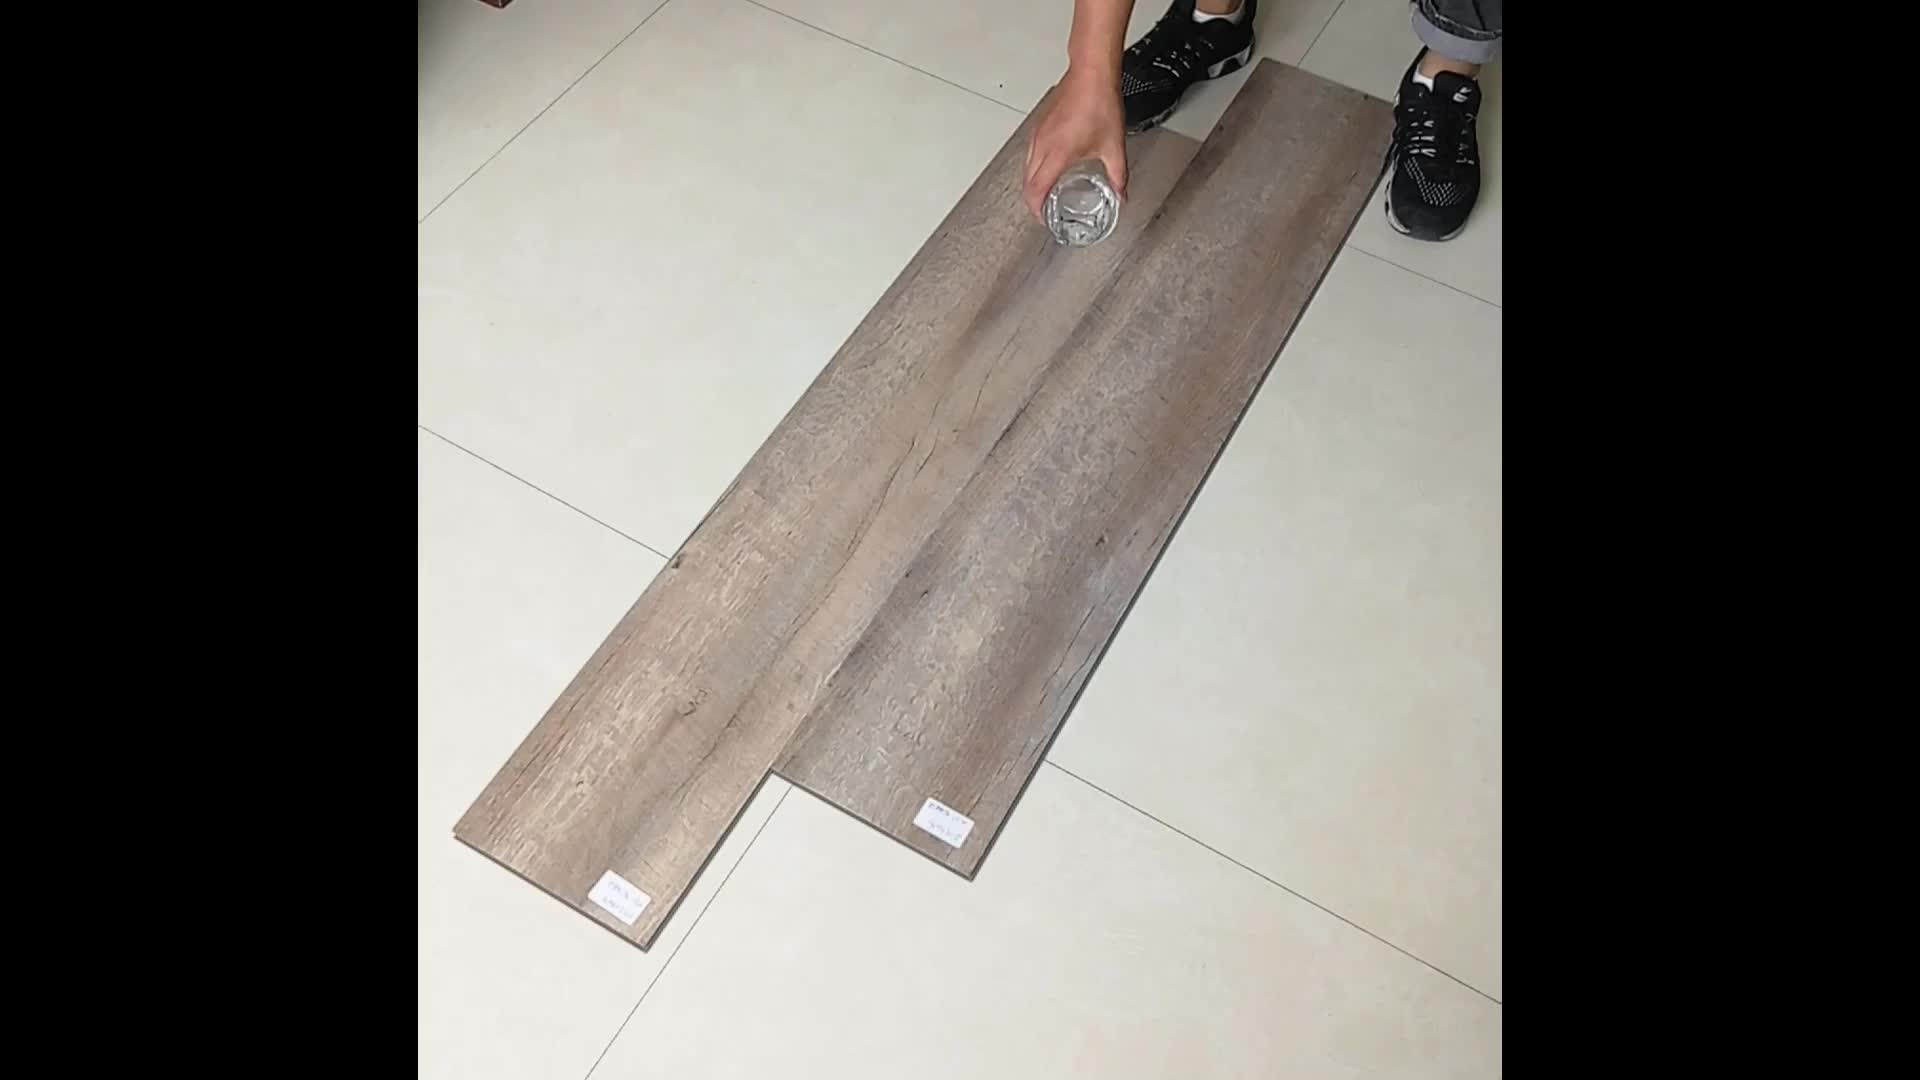 4mm 5mm loose lay pvc tile vinyl floor 5mm loose lay vinyl plank 4mm 5mm loose lay pvc tile vinyl floor 5mm loose lay vinyl plank floring dailygadgetfo Image collections